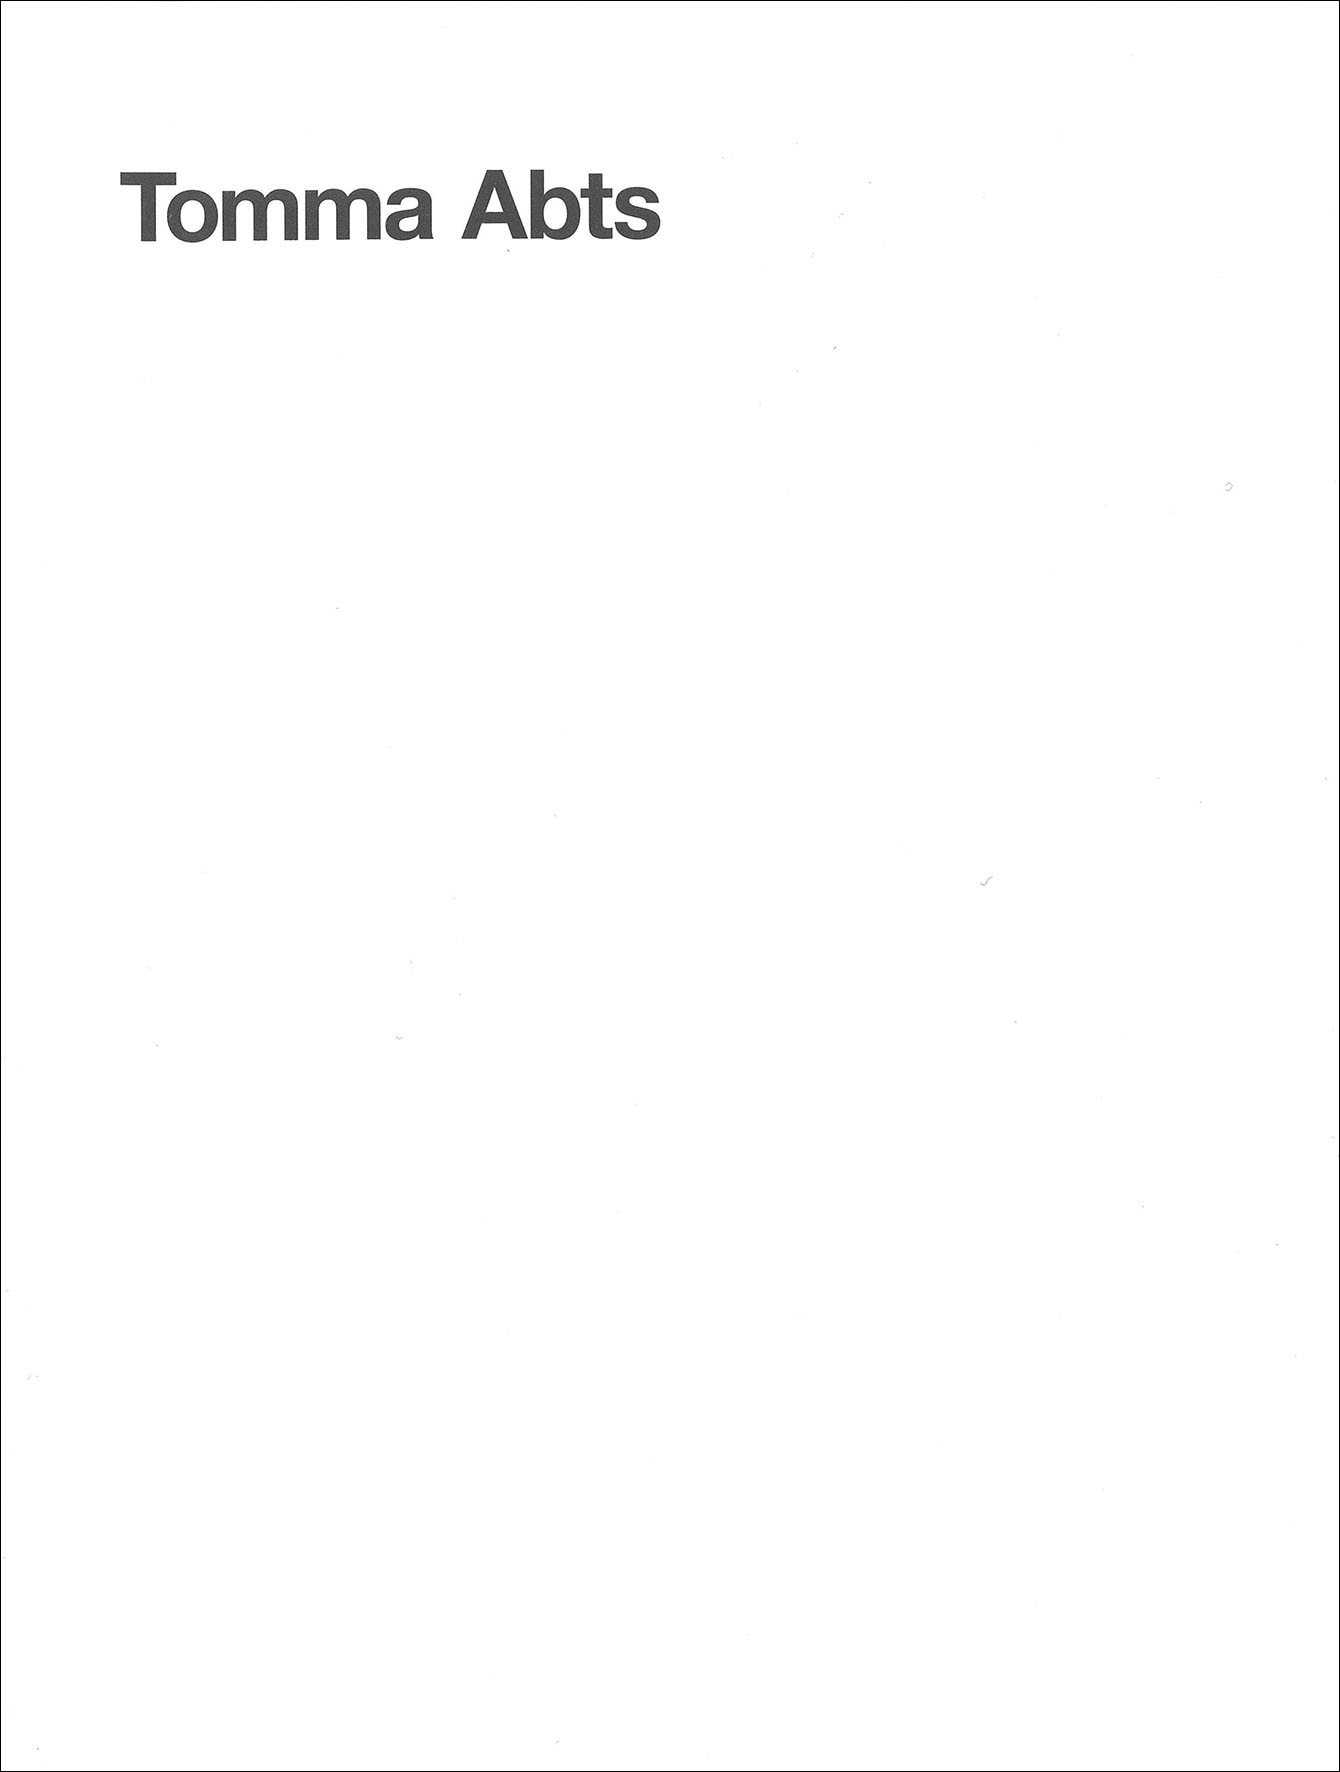 Tomma Abts – 2004, 52 pages, fully illustrated in color, Owrps, 23 x 17,5 cm Edition 800 out of print – First publication on the artist Tomma Abts. The book contains an essay by Jan Verwoert, a conversation between Tomma Abts and Peter Doig and color reproductions of ten paintings that have been selected by the artist.